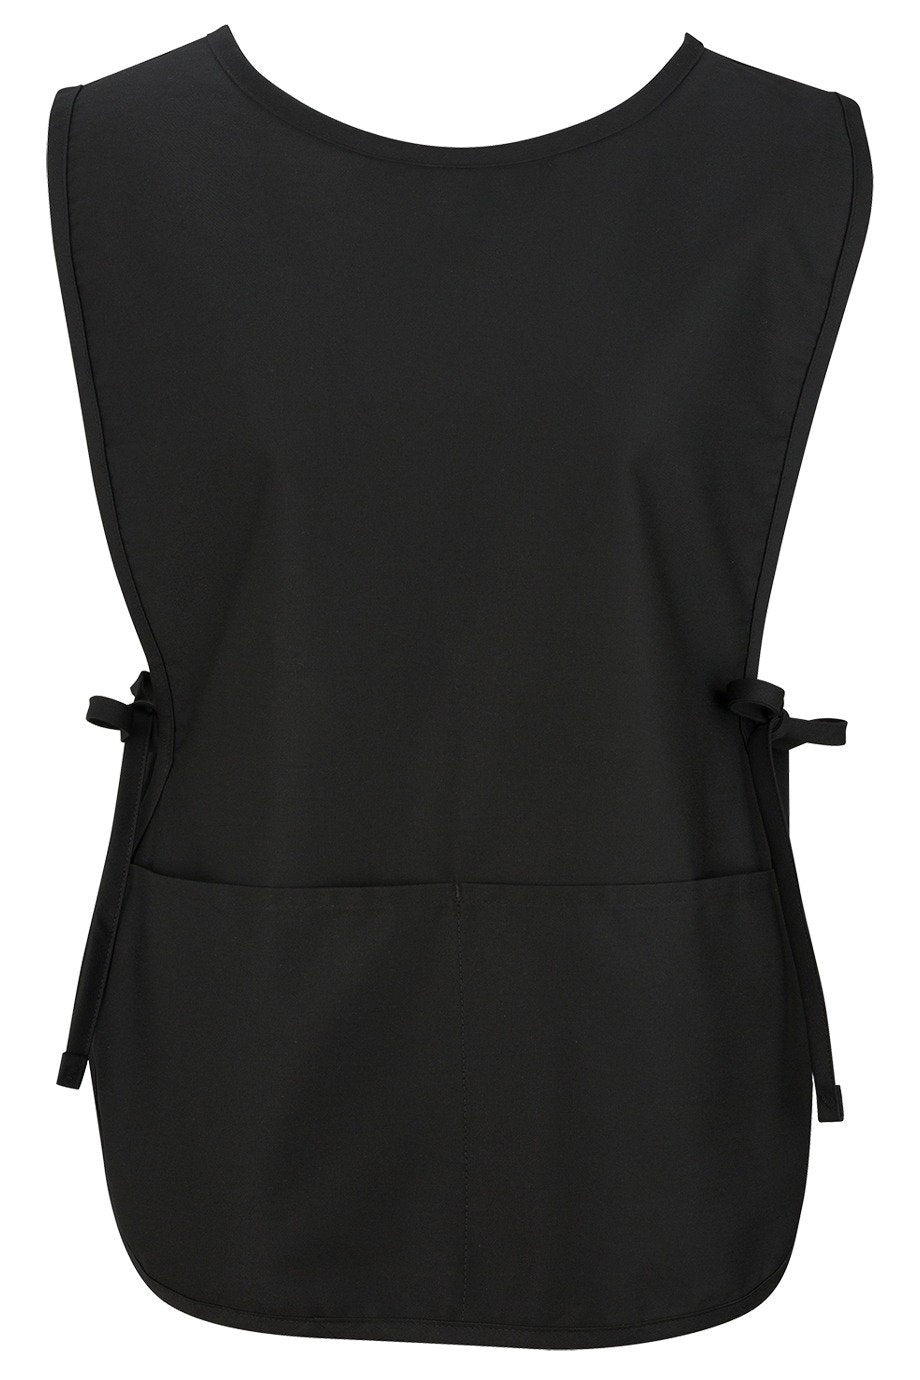 Black Cobbler Apron (Divided Pocket)